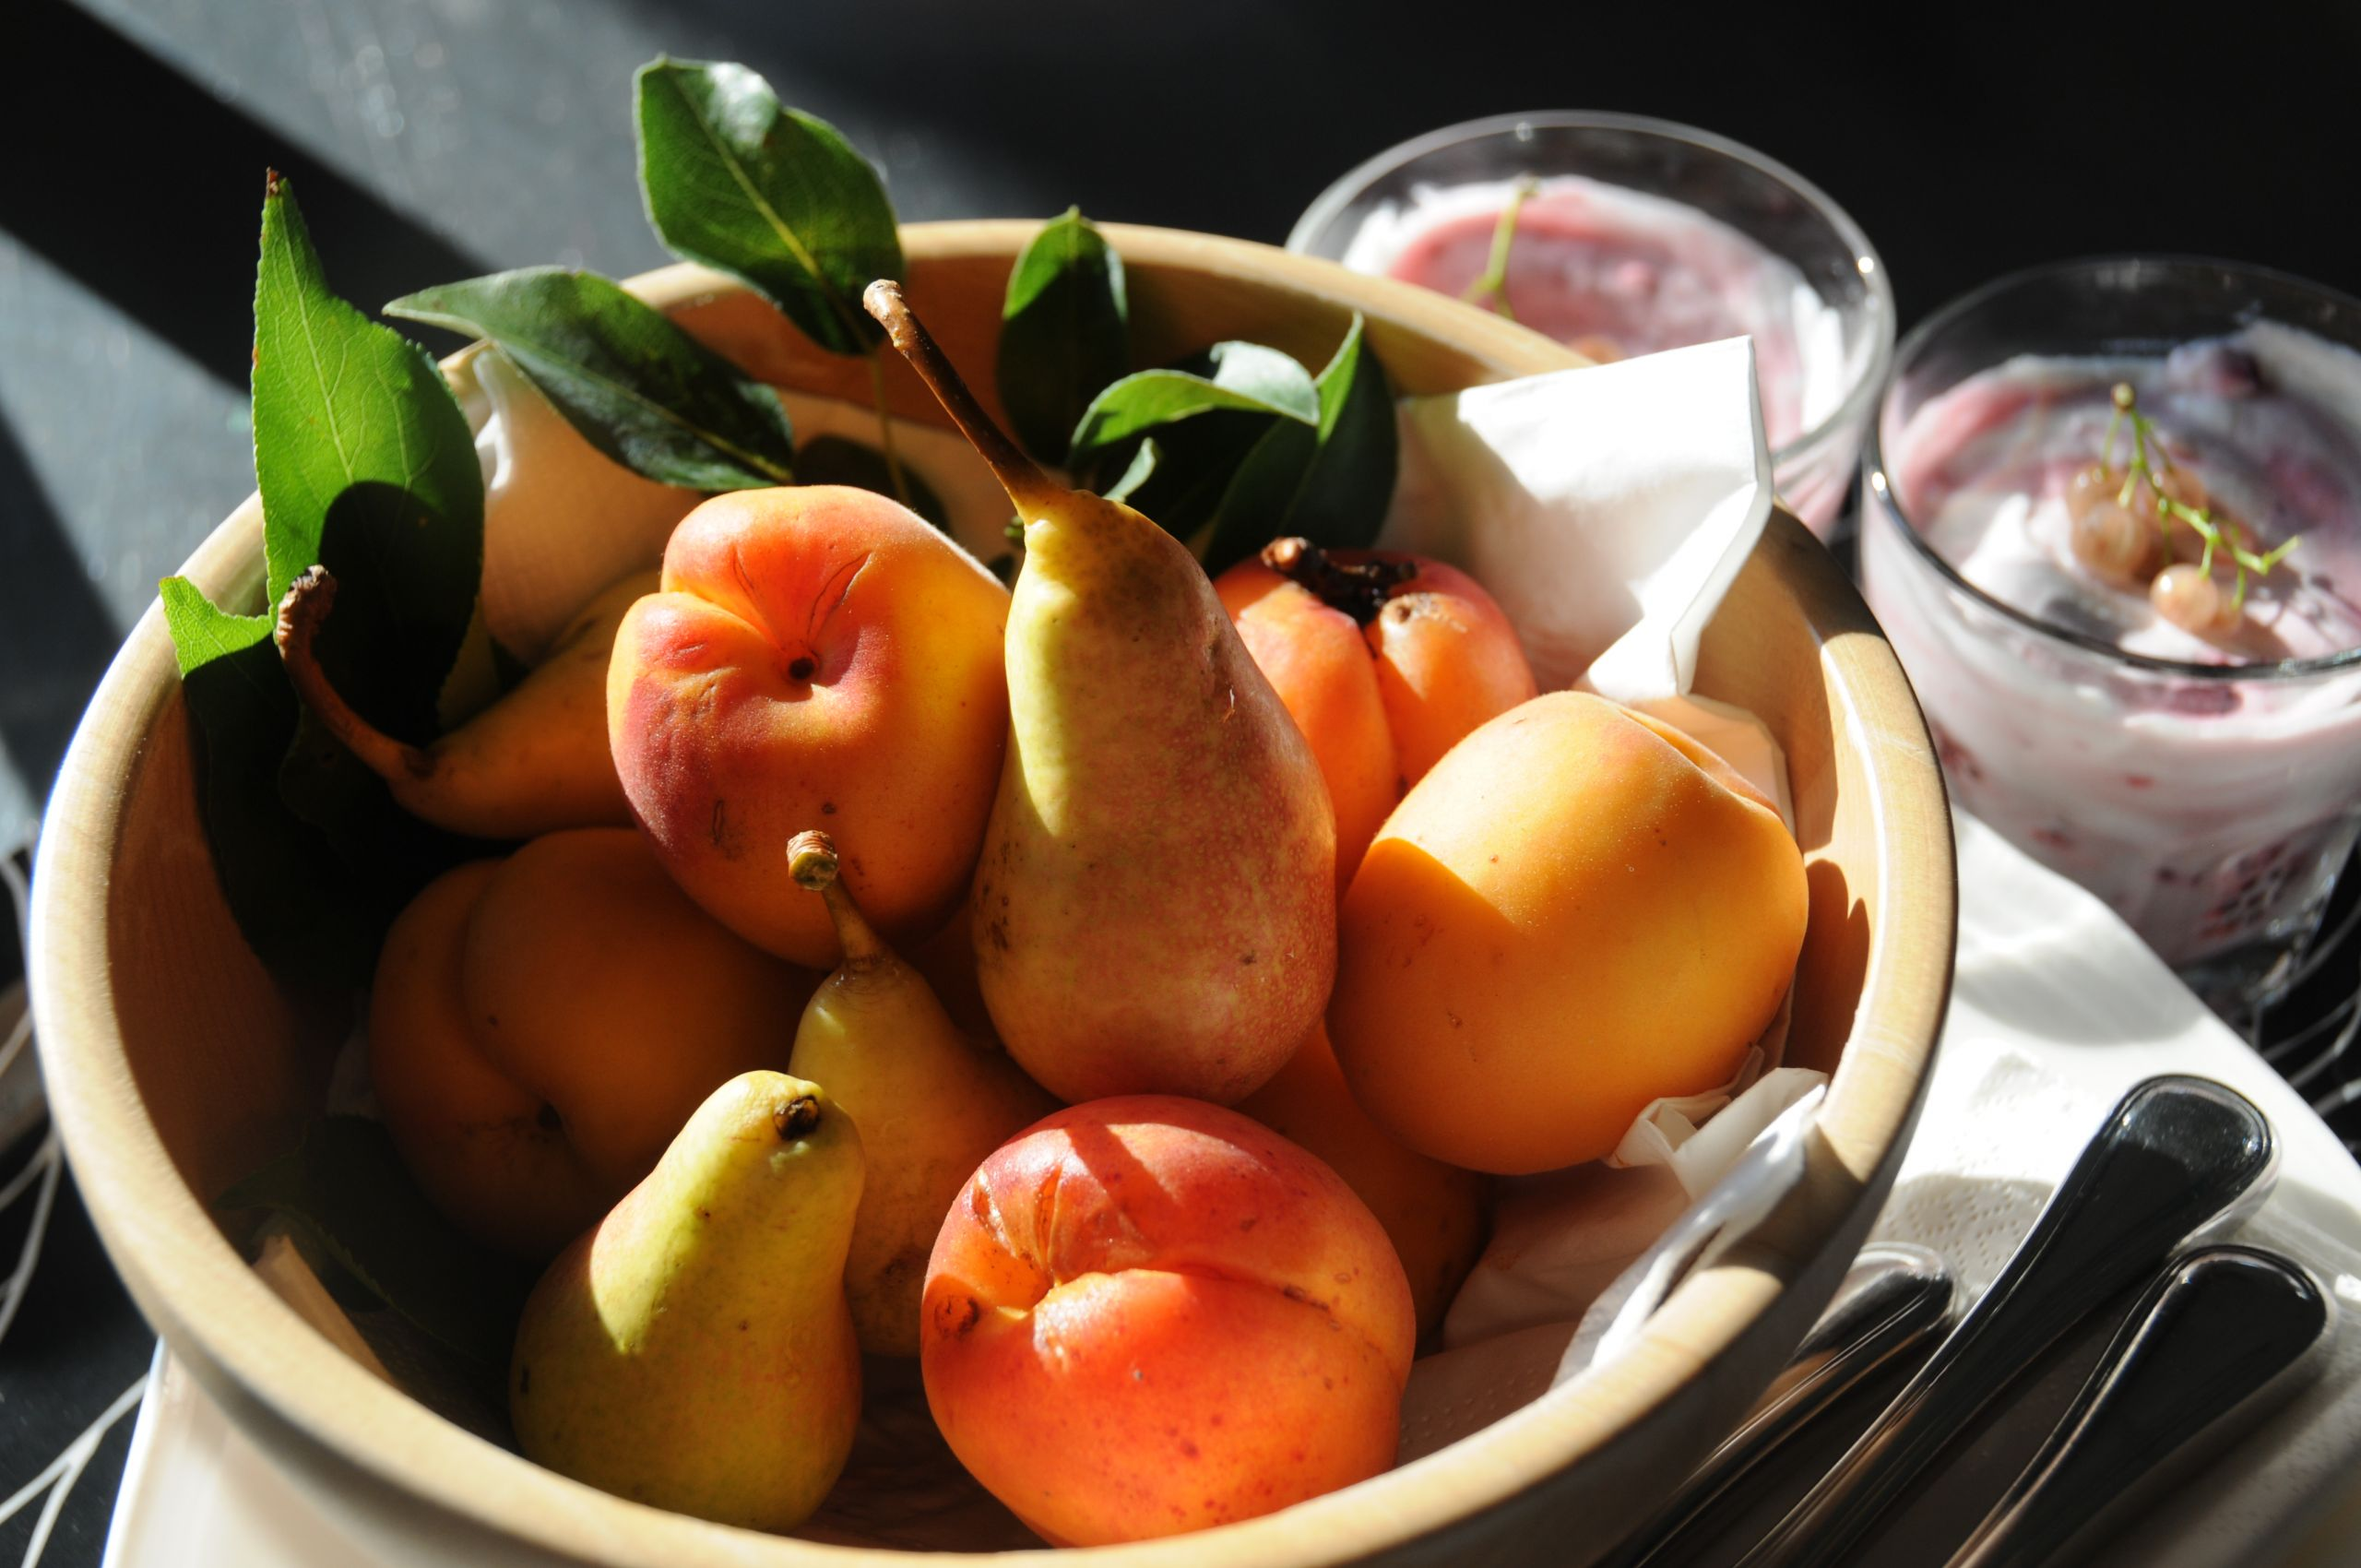 Image of seasonal fruits served for breakfast at Siena House